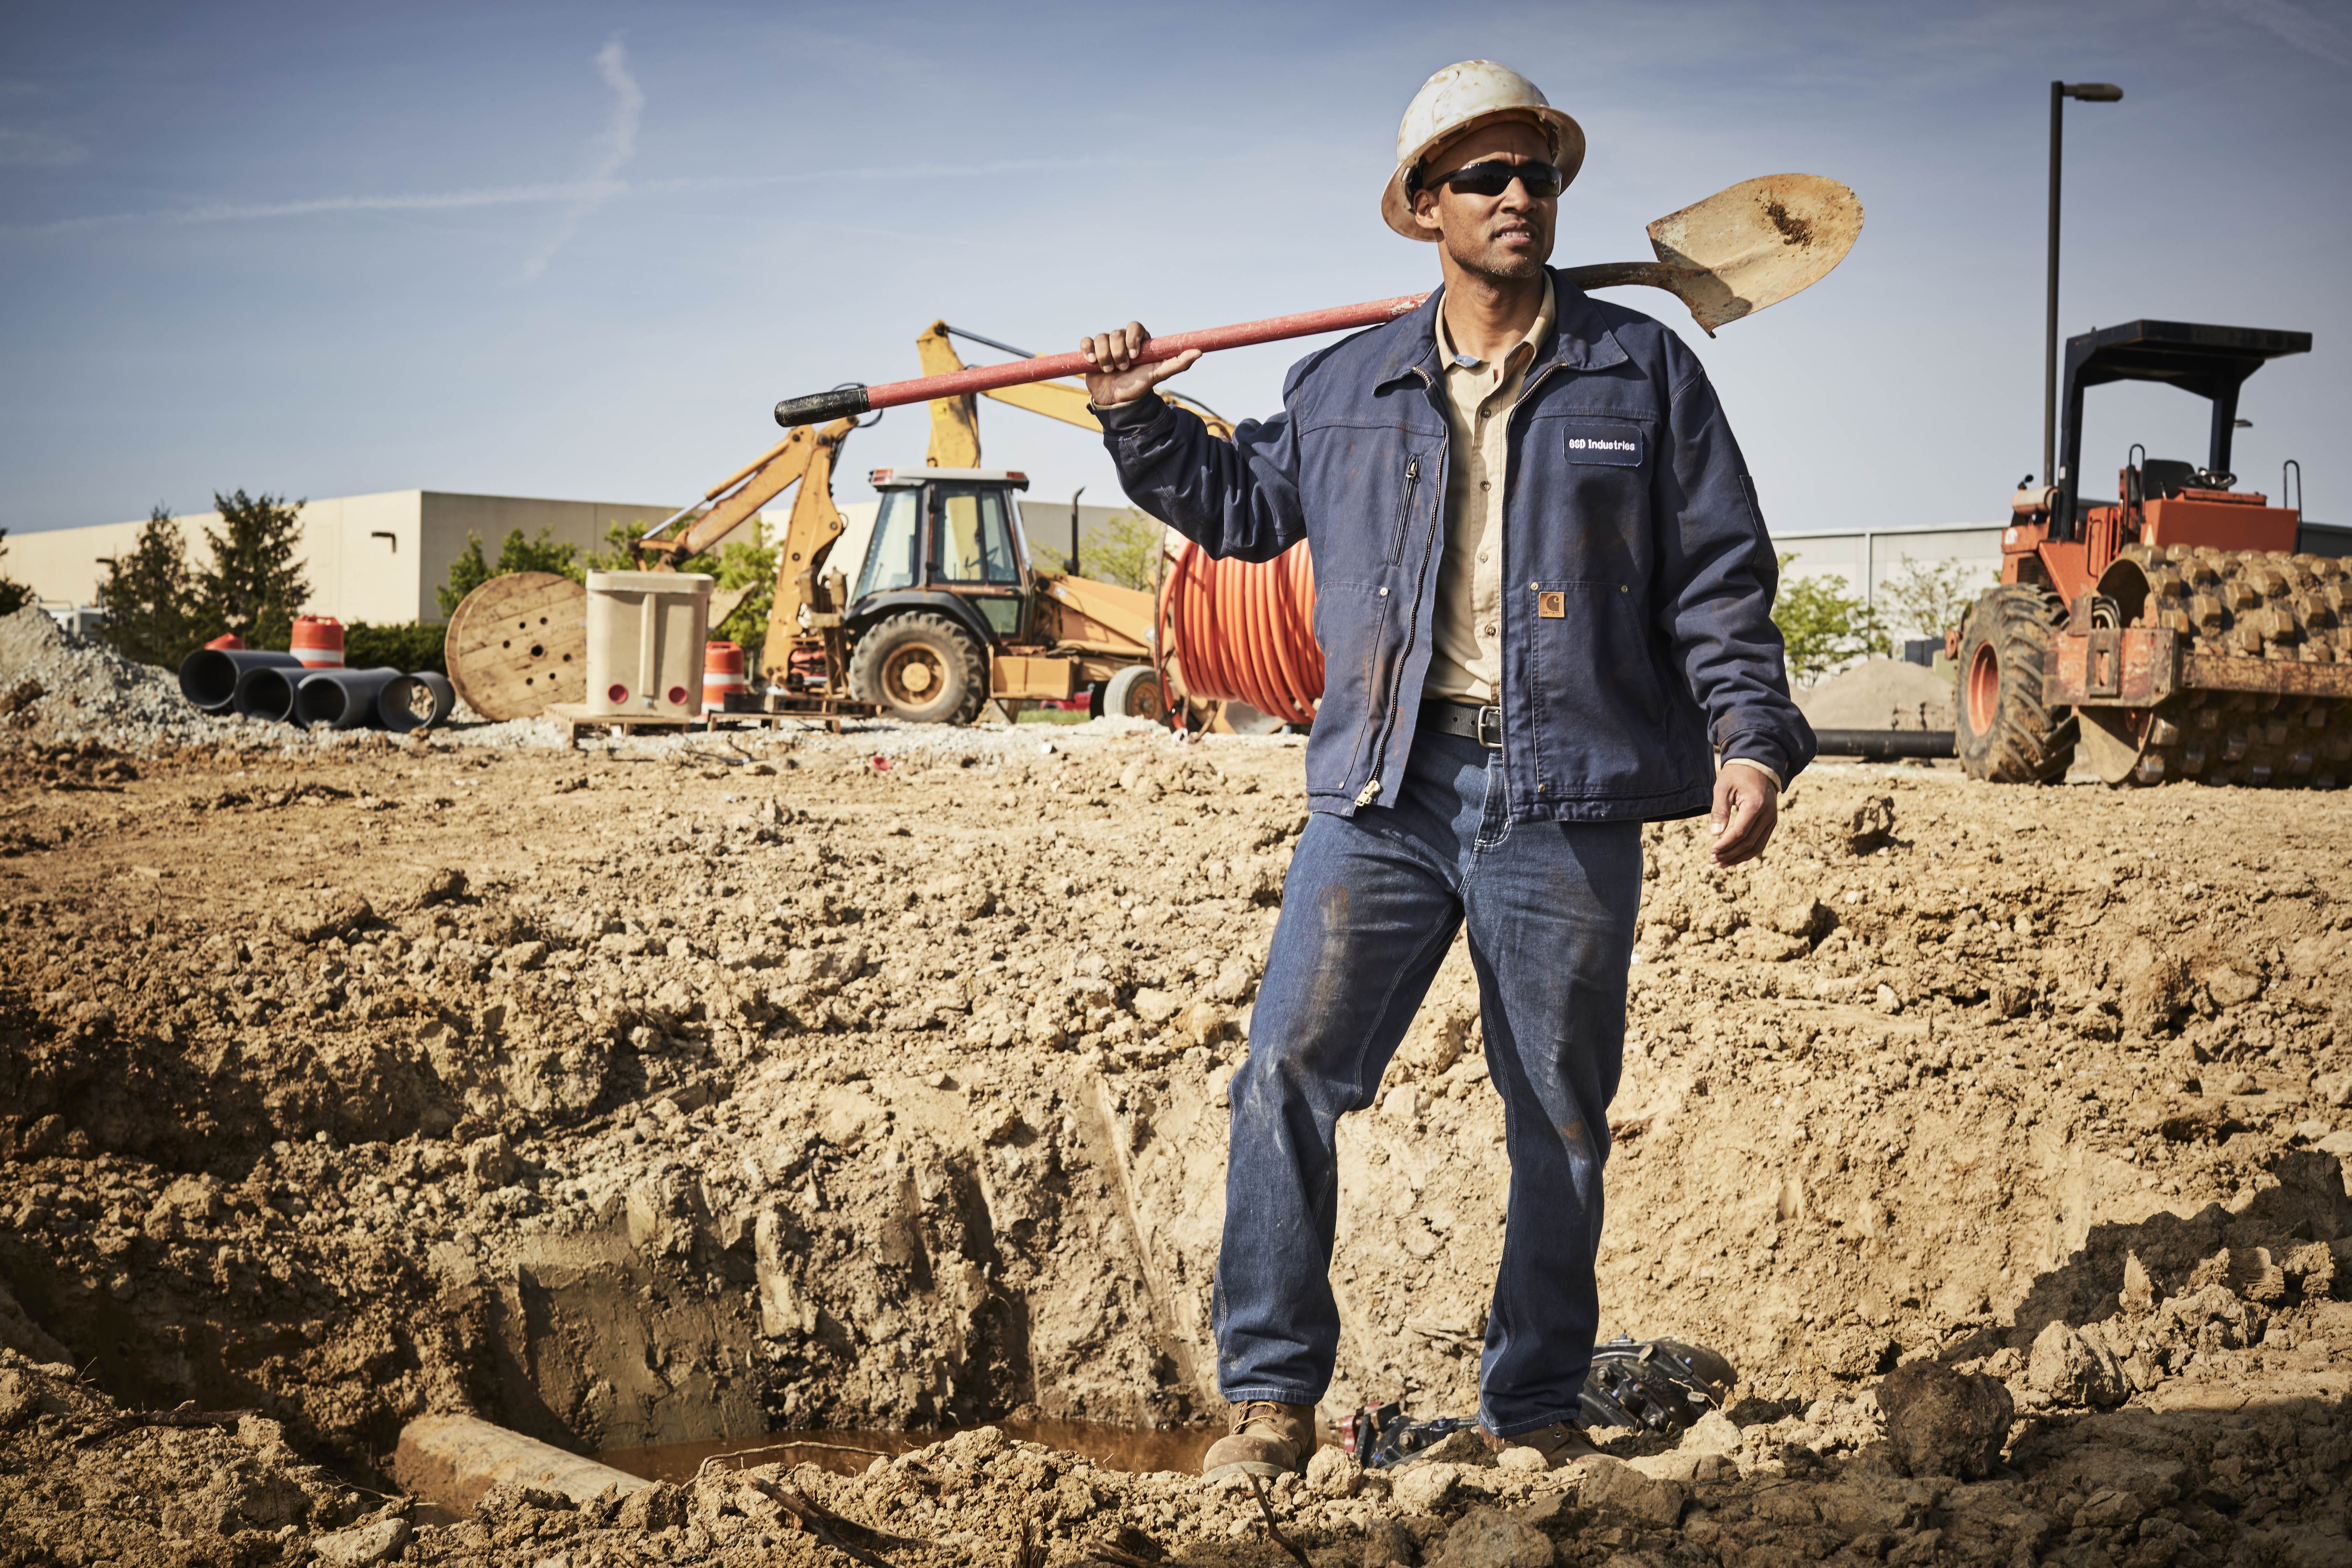 Construction worker on site in a Carhartt jacket, light brown button up shirt and jeans holding a shovel